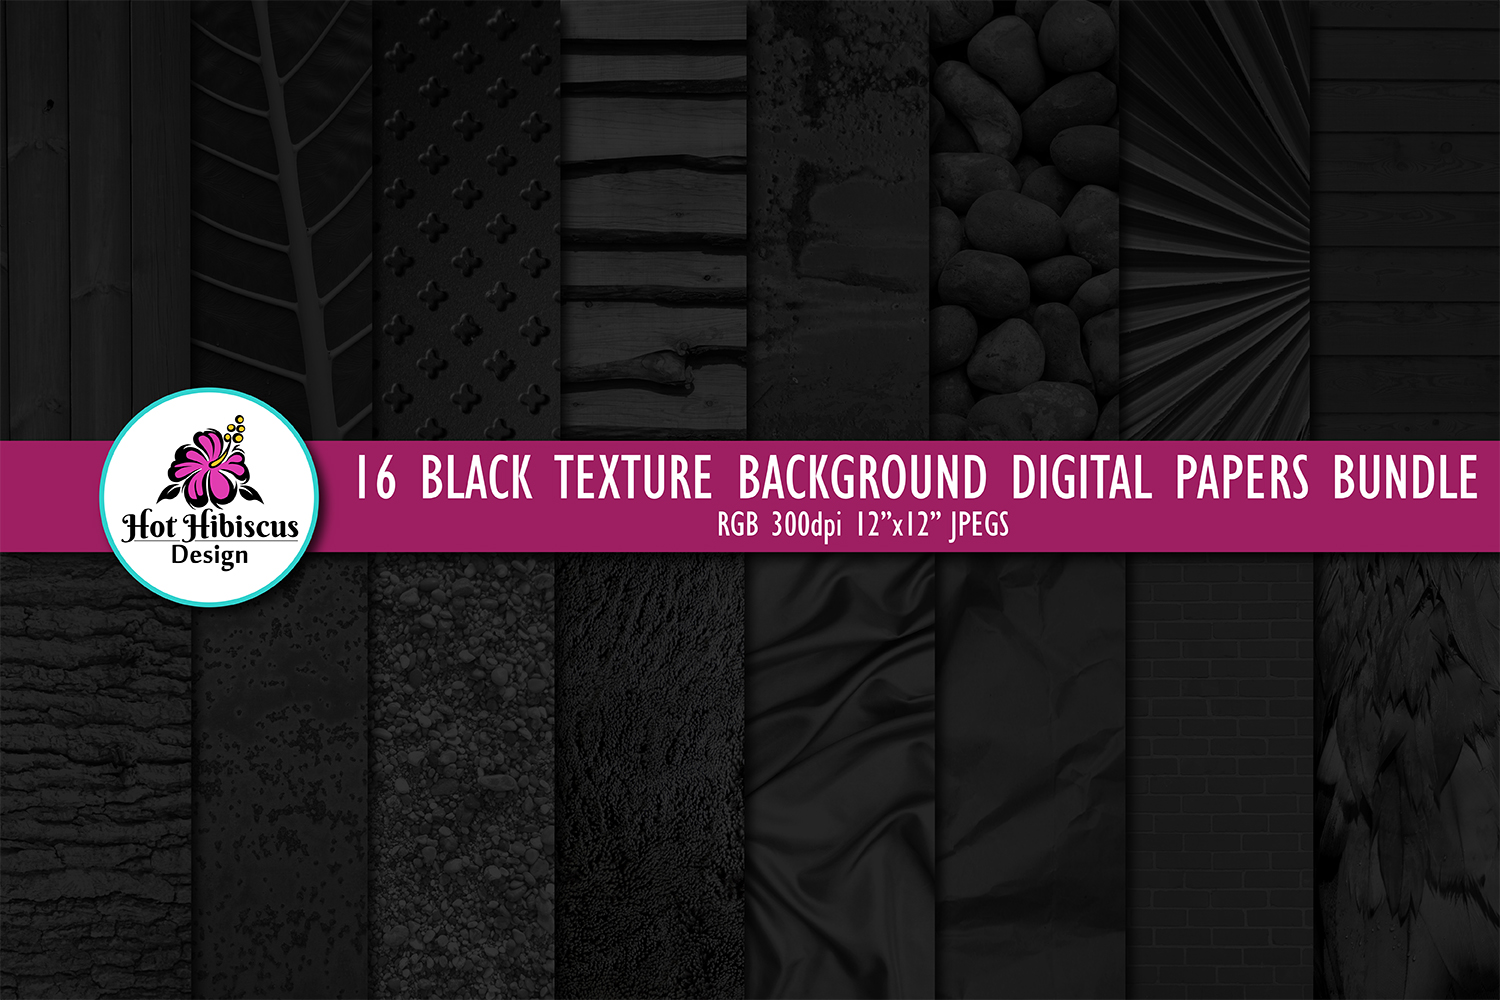 16 Black Photo Texture Background Digital Papers Bundle example image 1